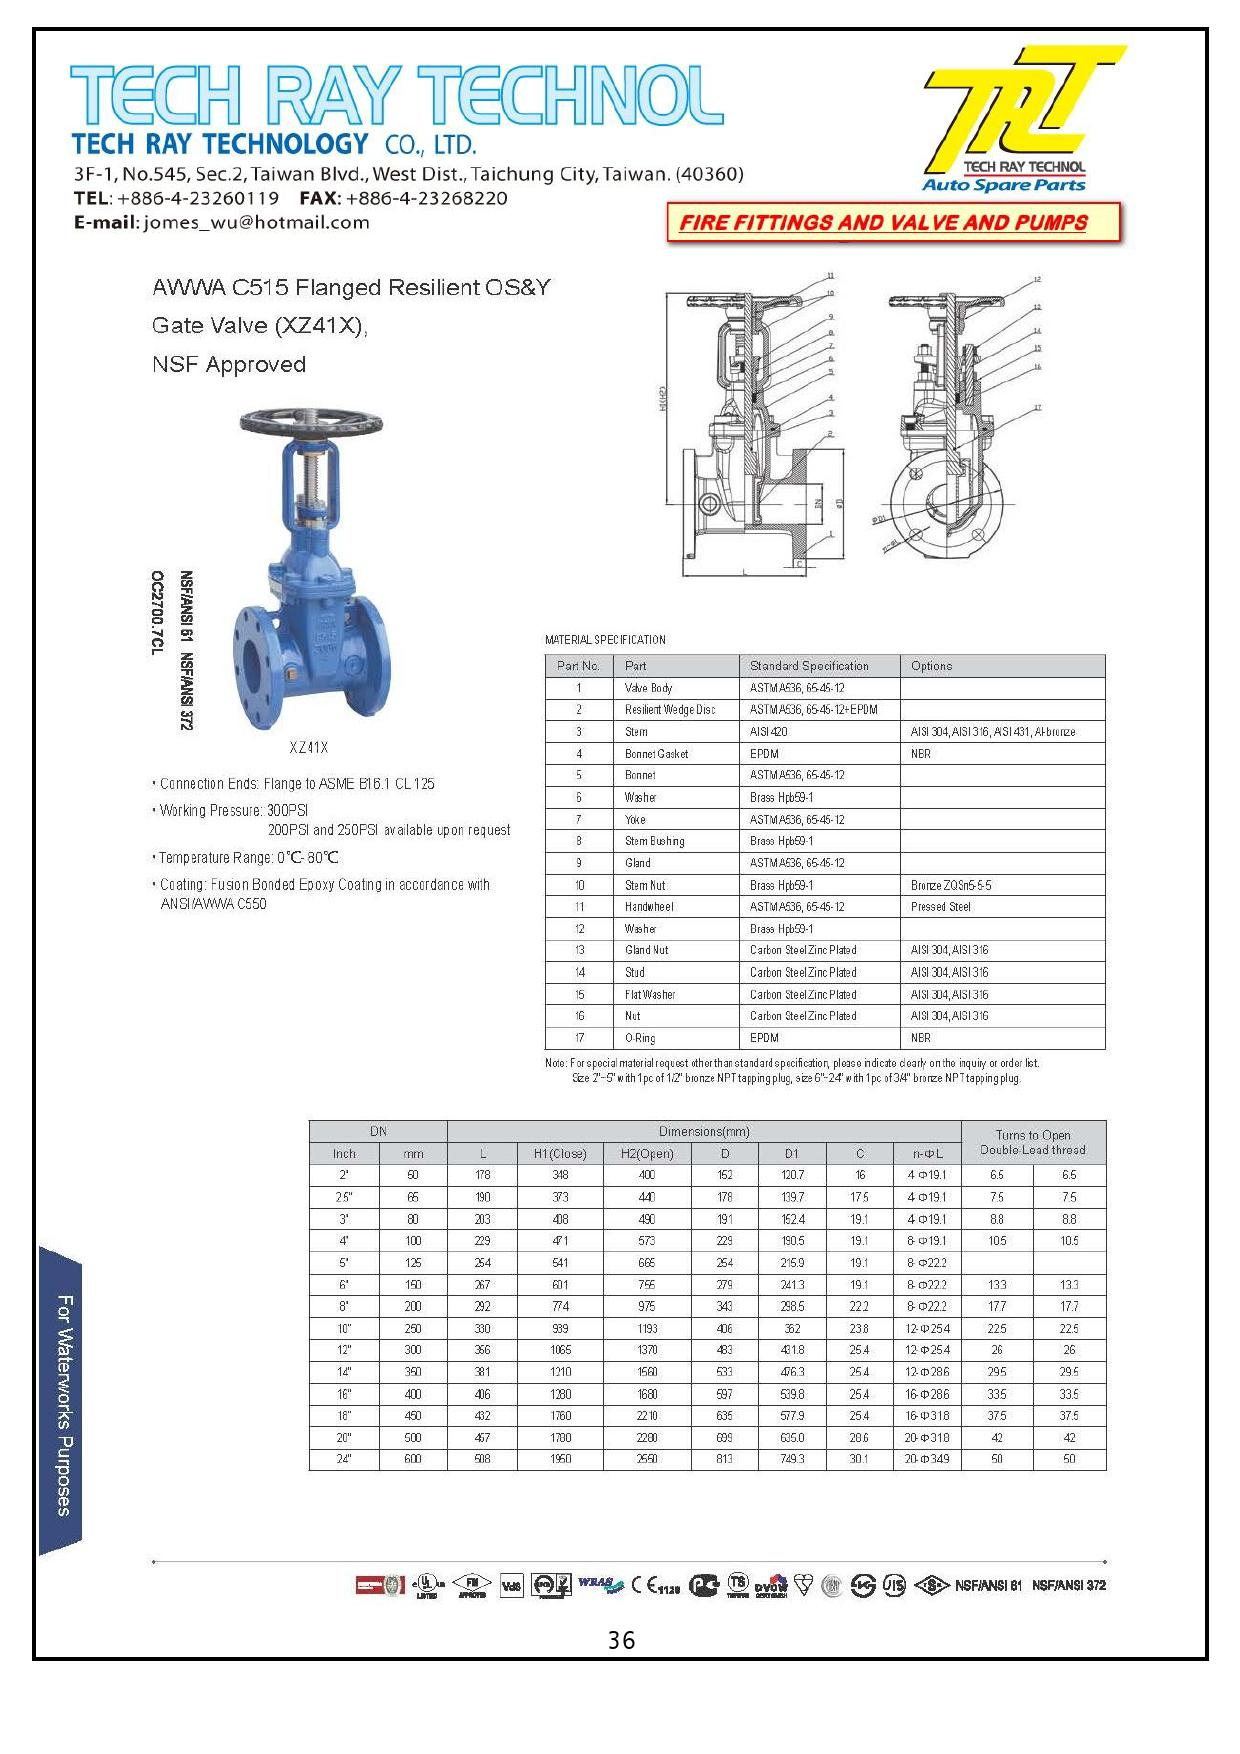 AWWA Resilient Wedge Gate Valve